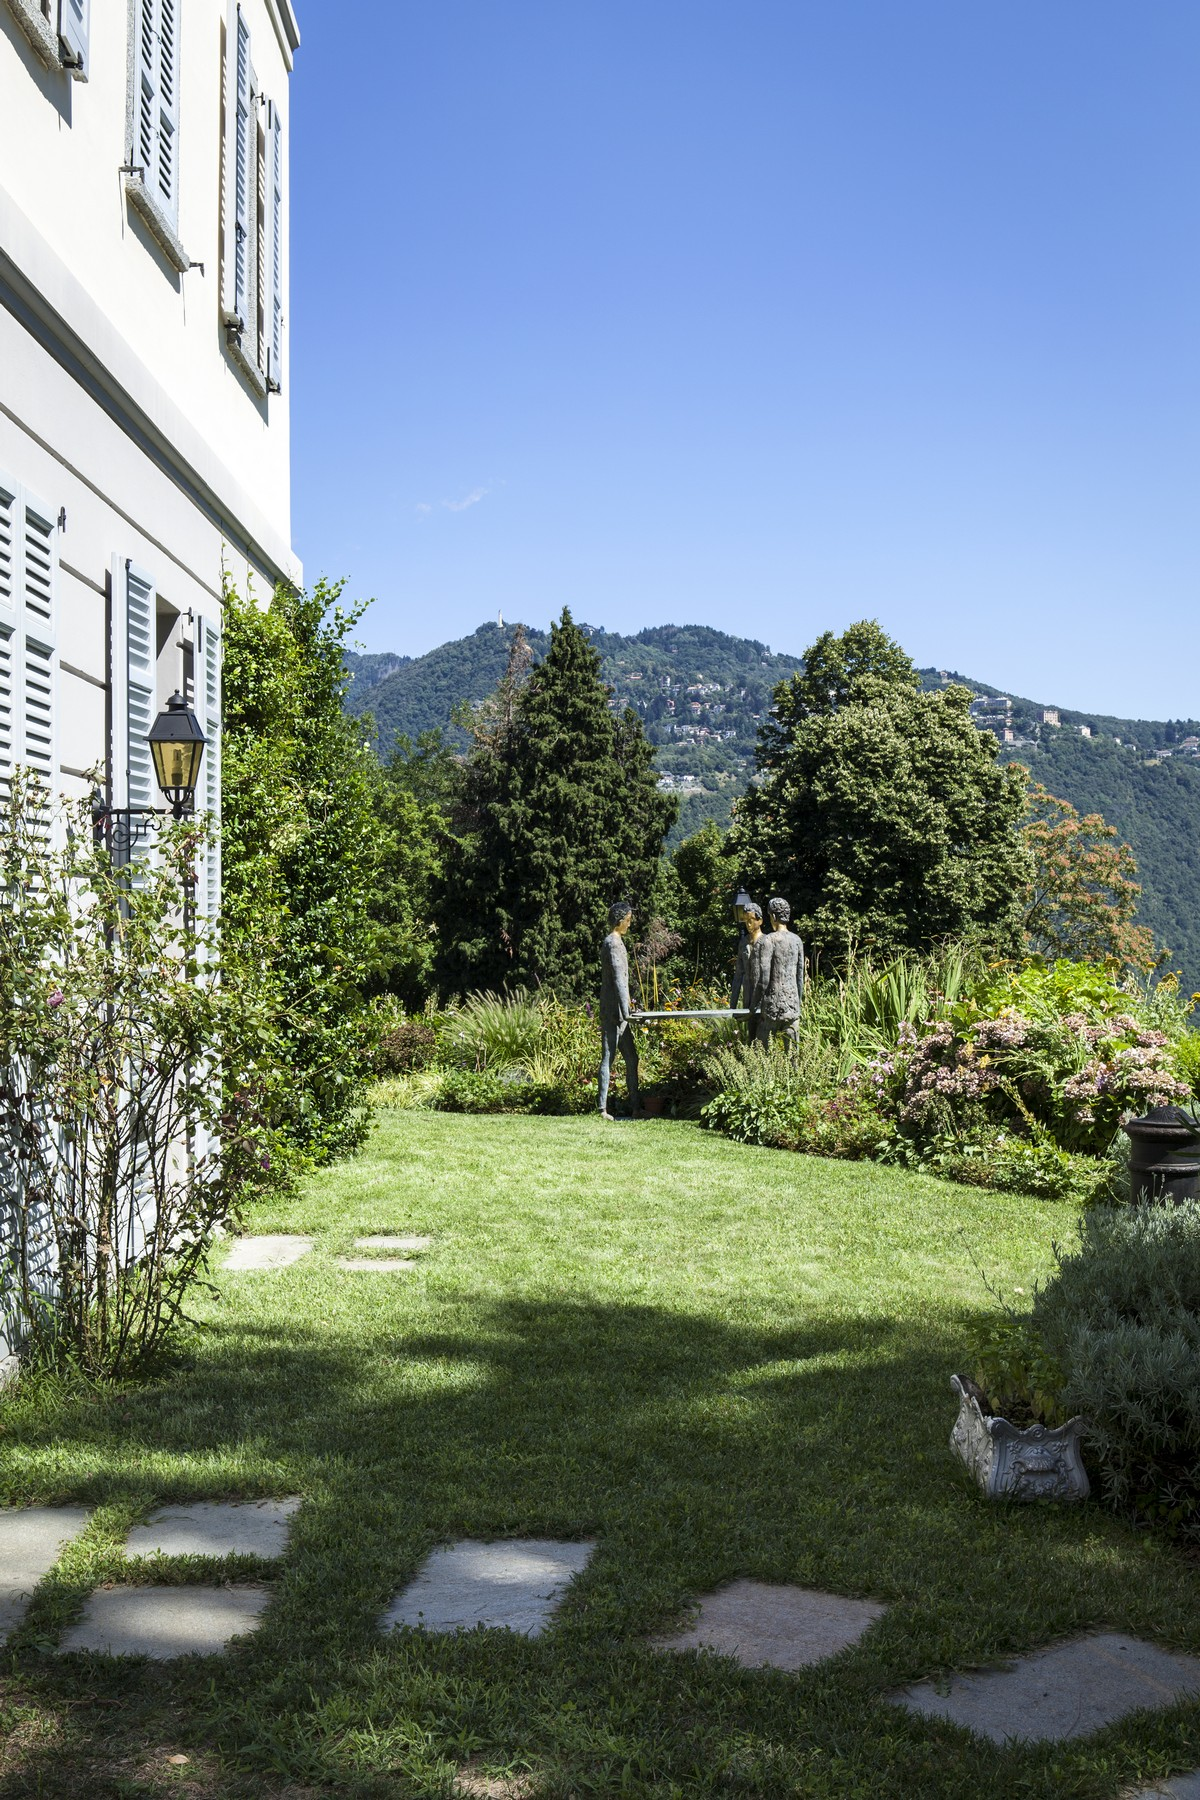 Additional photo for property listing at Wonderful apartment set in the luxurious villa Eros Via Cardano Como, Como 22100 Italy